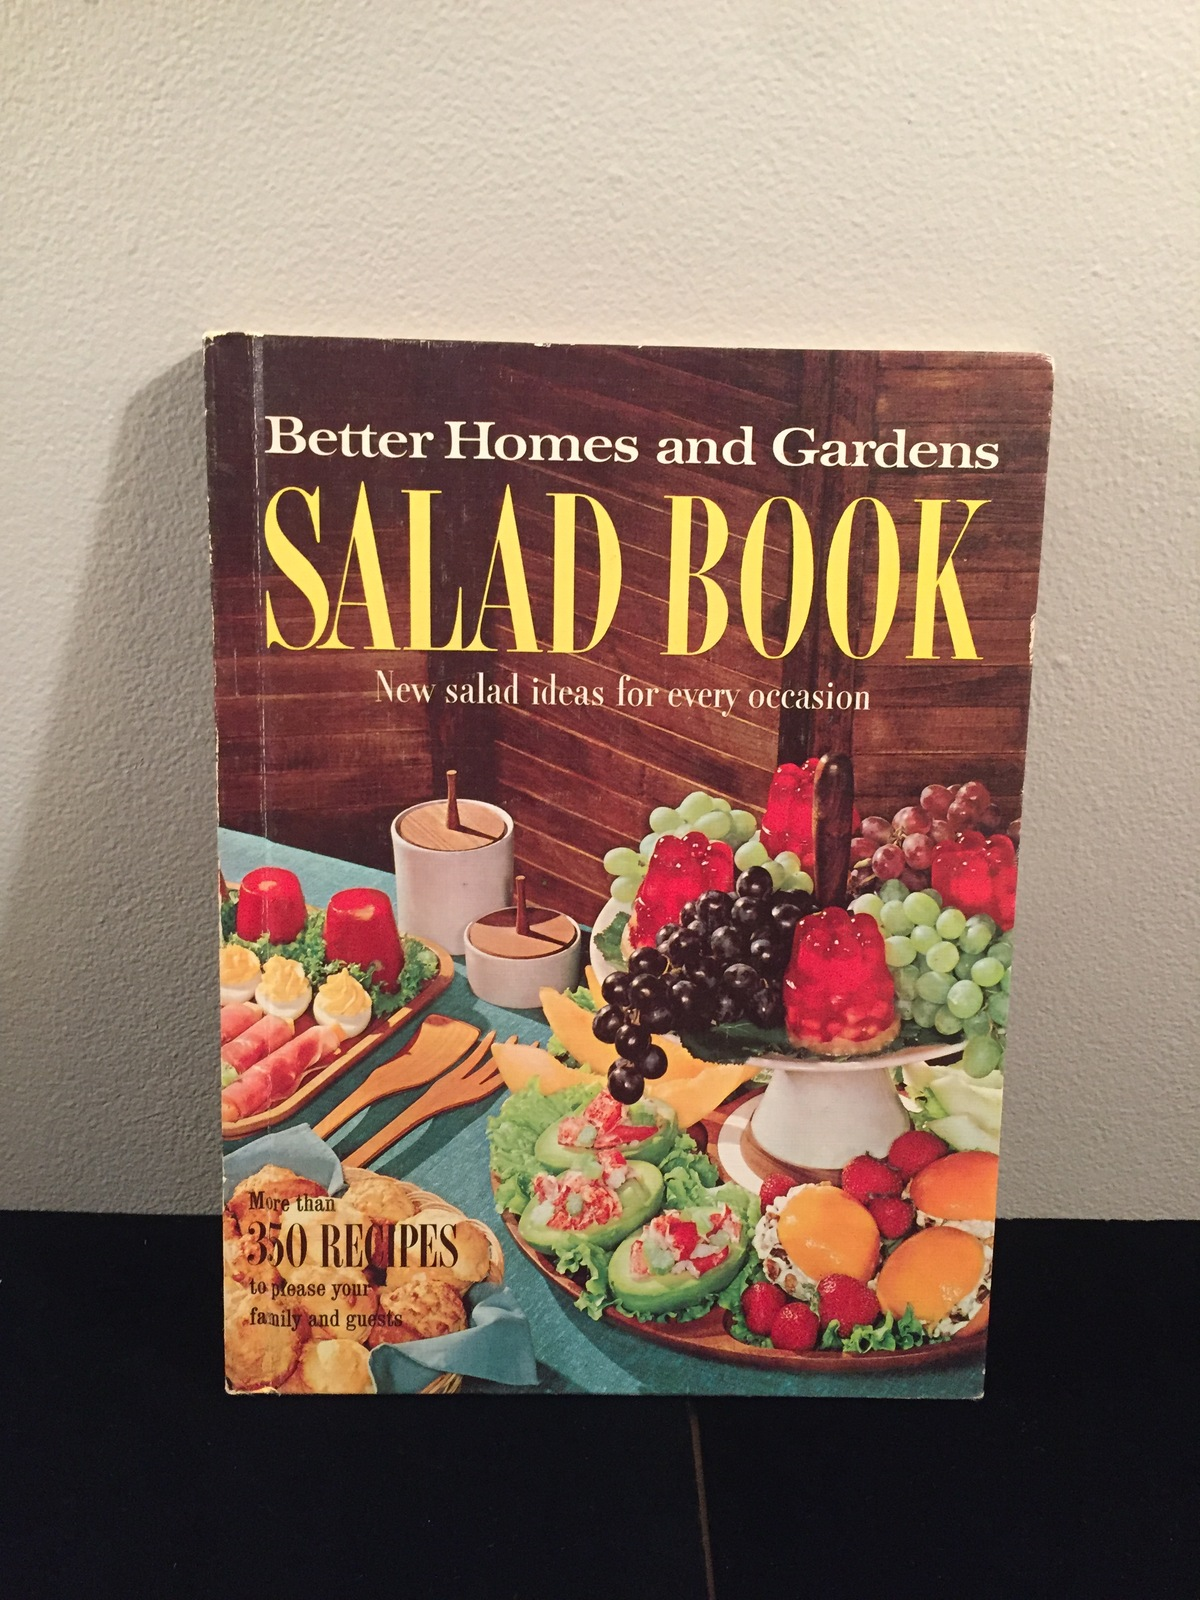 Vintage 1967 Better Homes and Gardens Salad Book Cookbook- hardcover